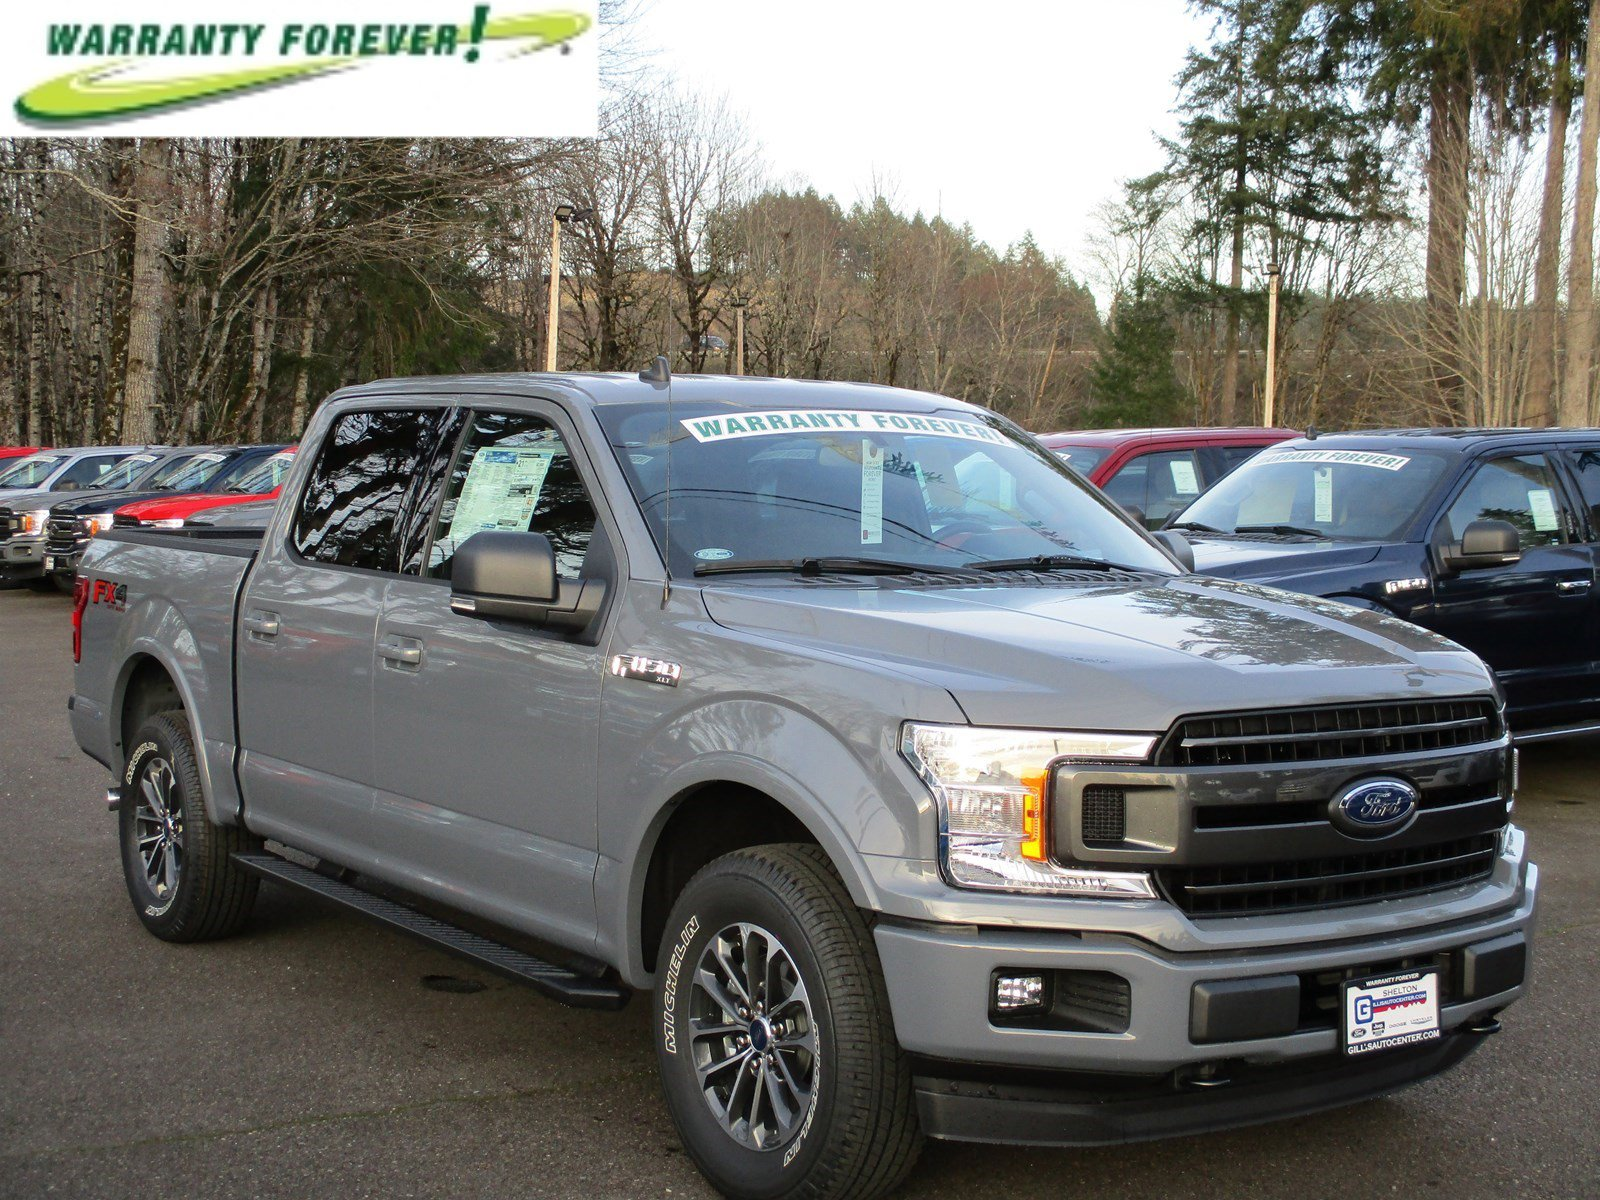 New-2019-Ford-F-150-XLT-4WD-SuperCrew-55'-Box